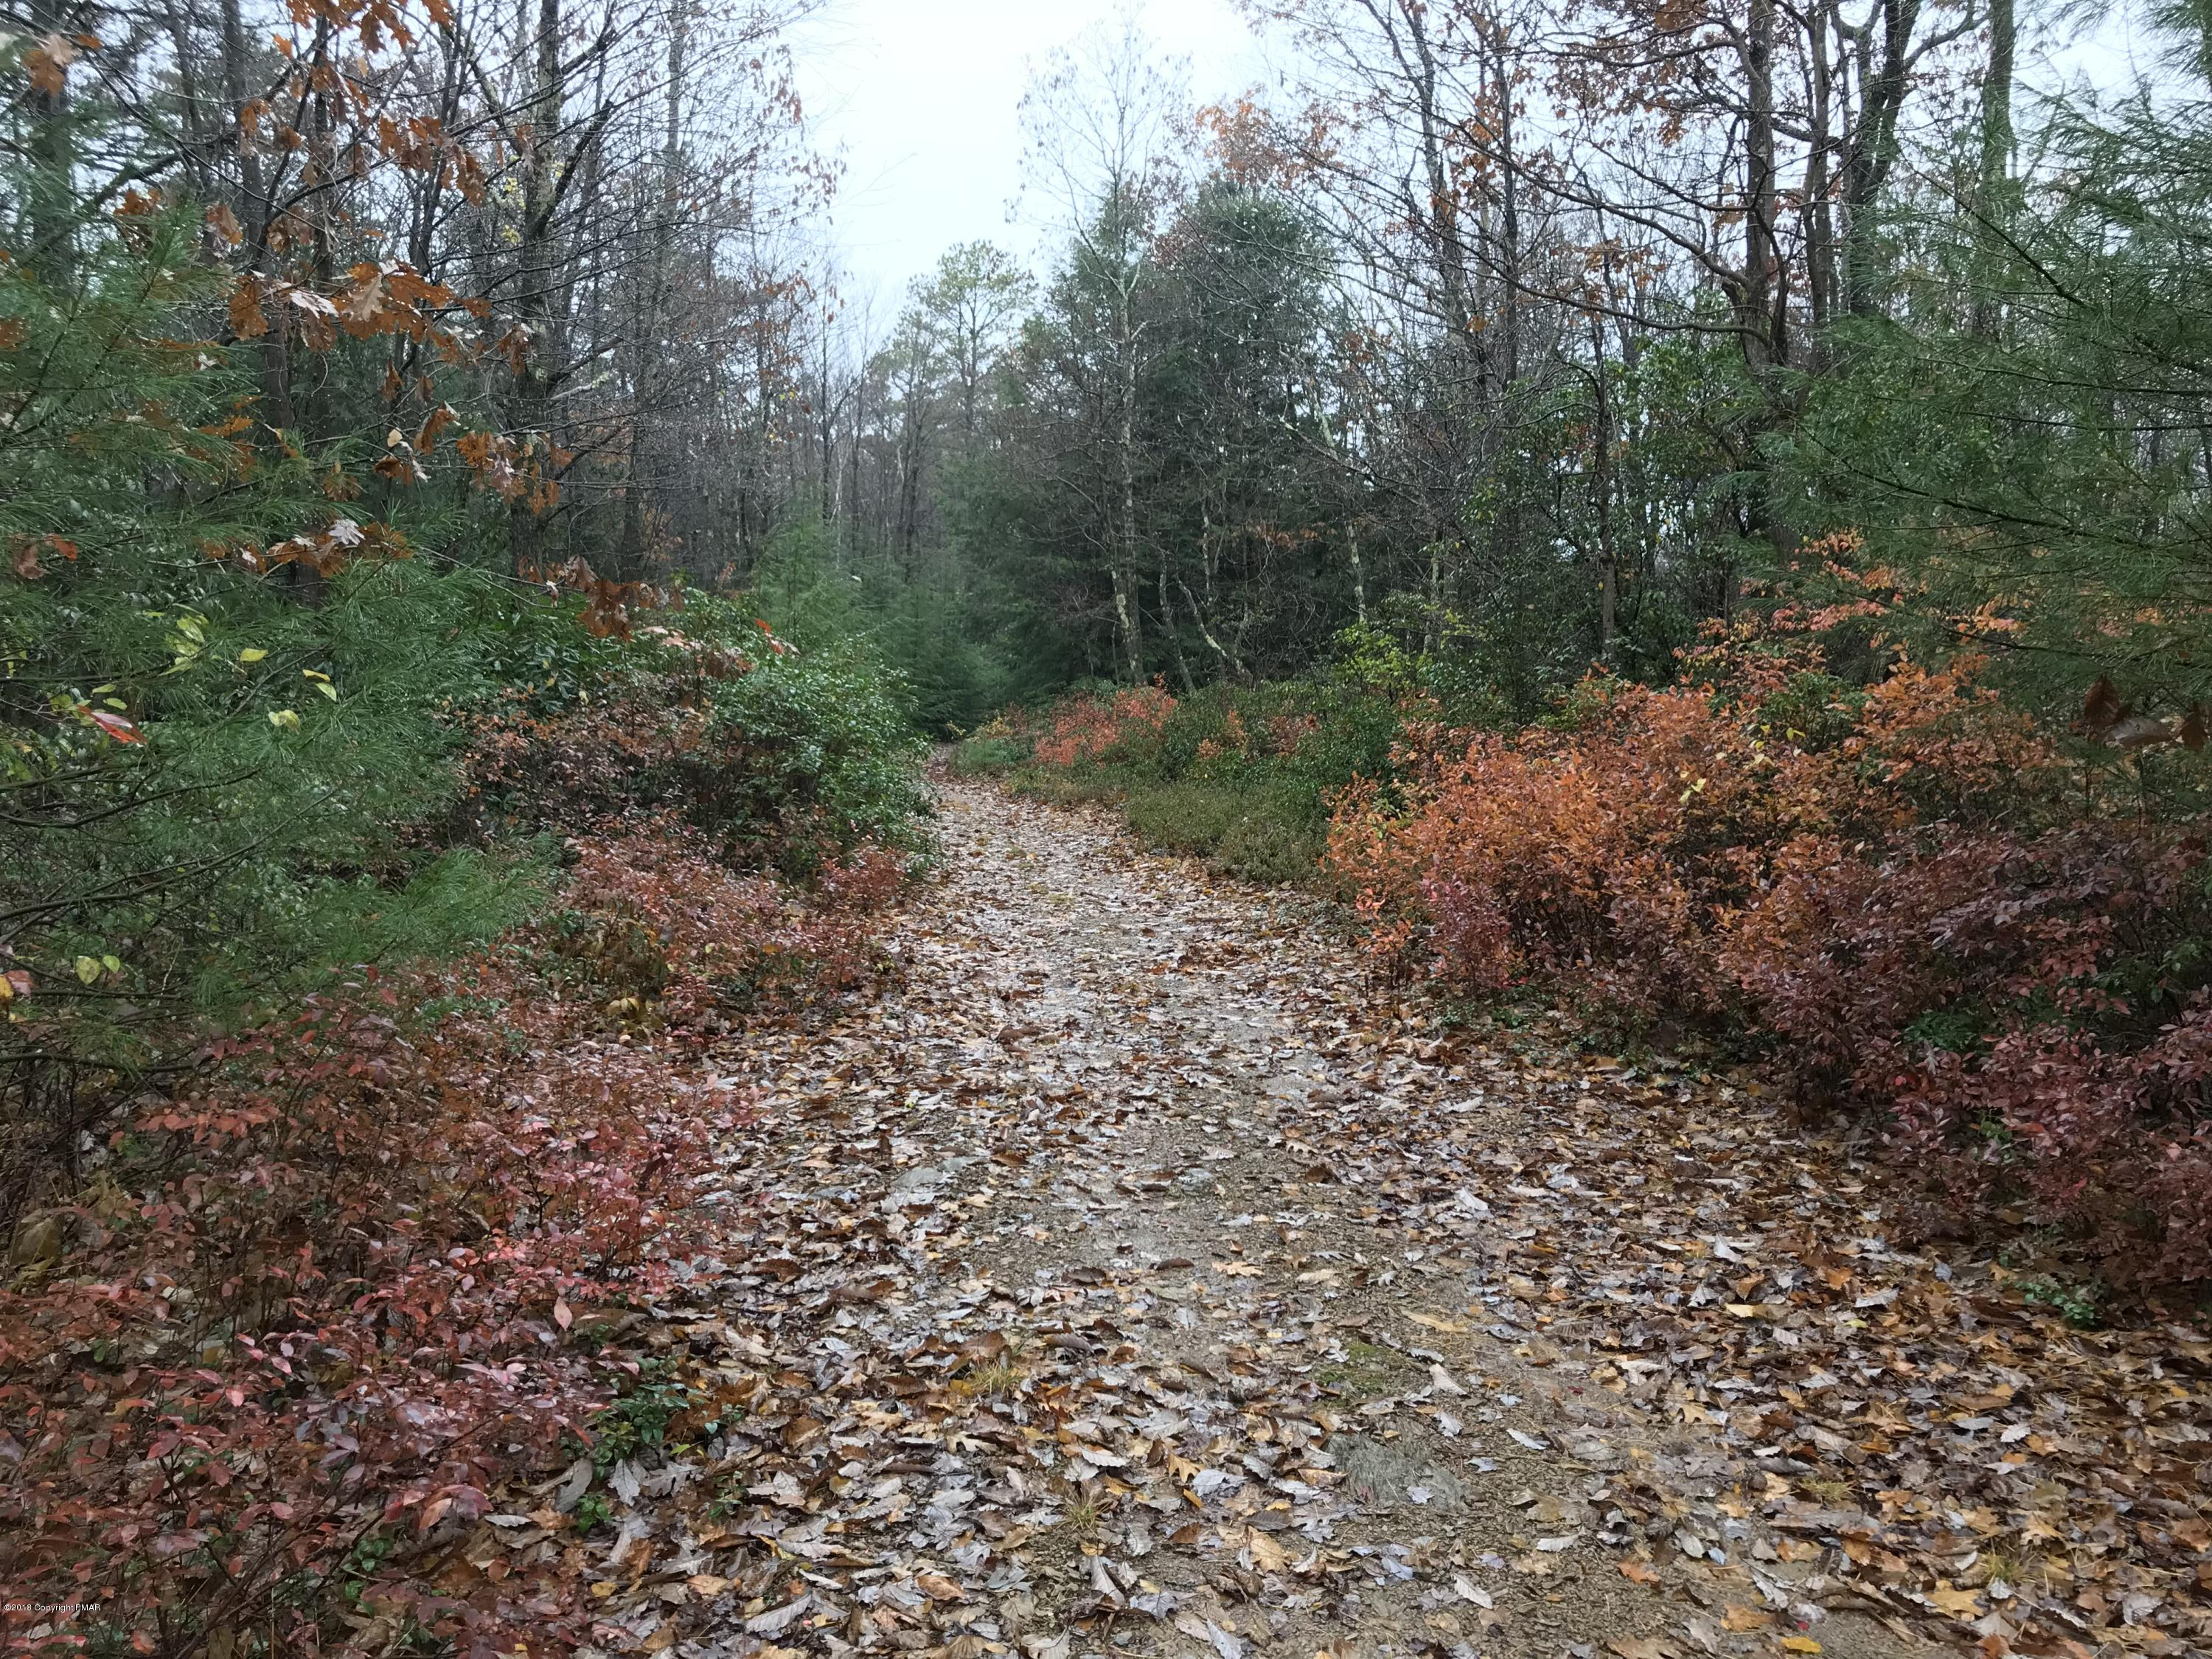 Lot 230 Mahogany Way, Jim Thorpe, PA 18229